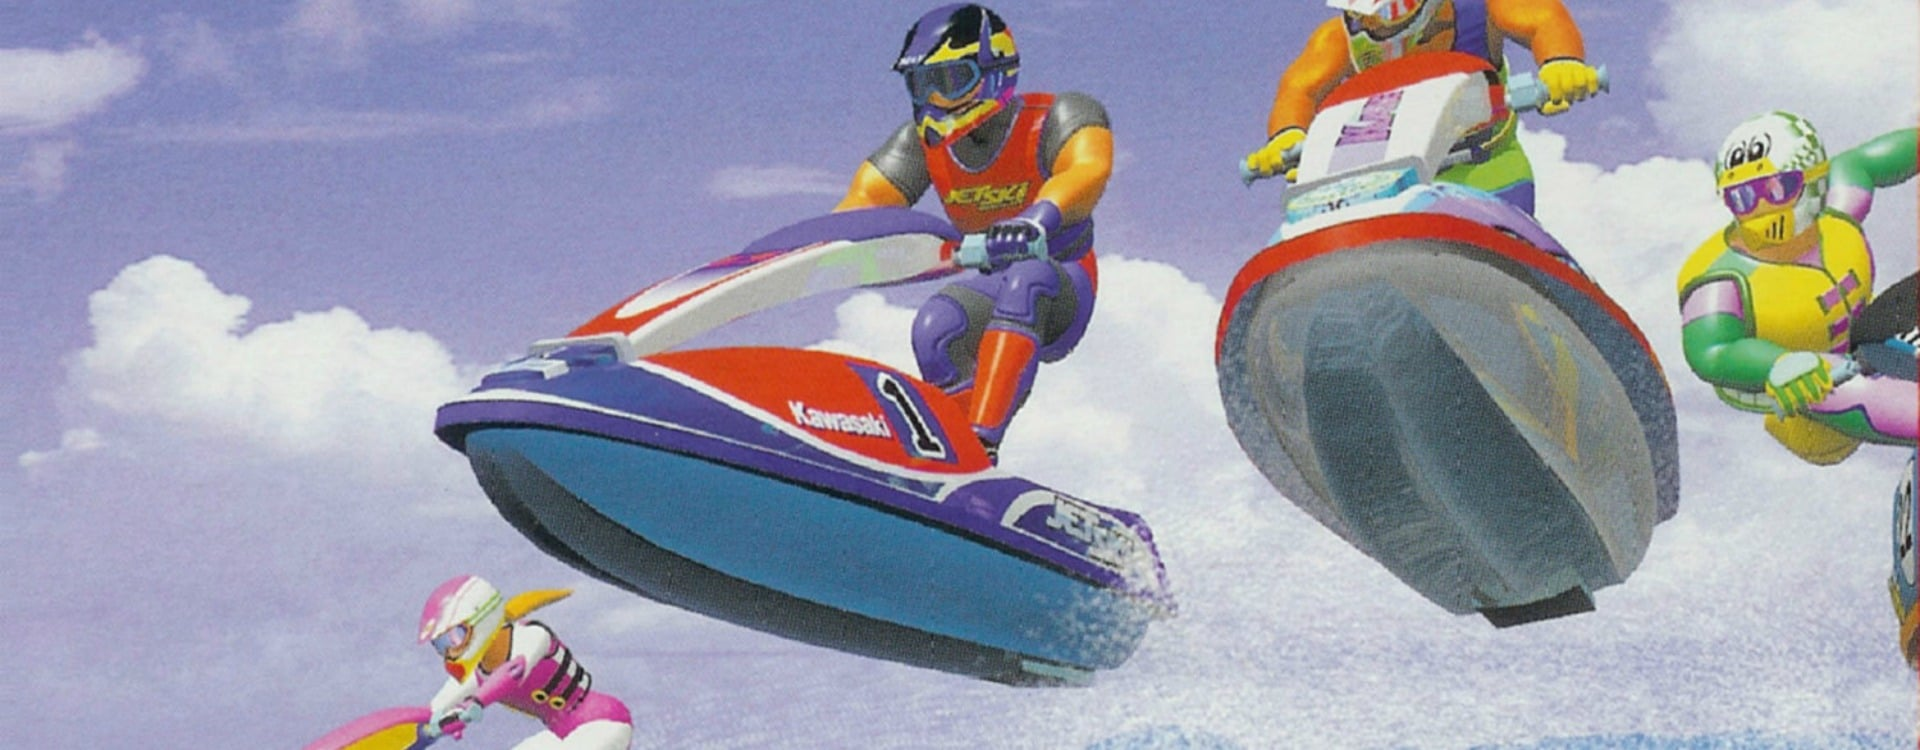 wave-race-64-review-banner